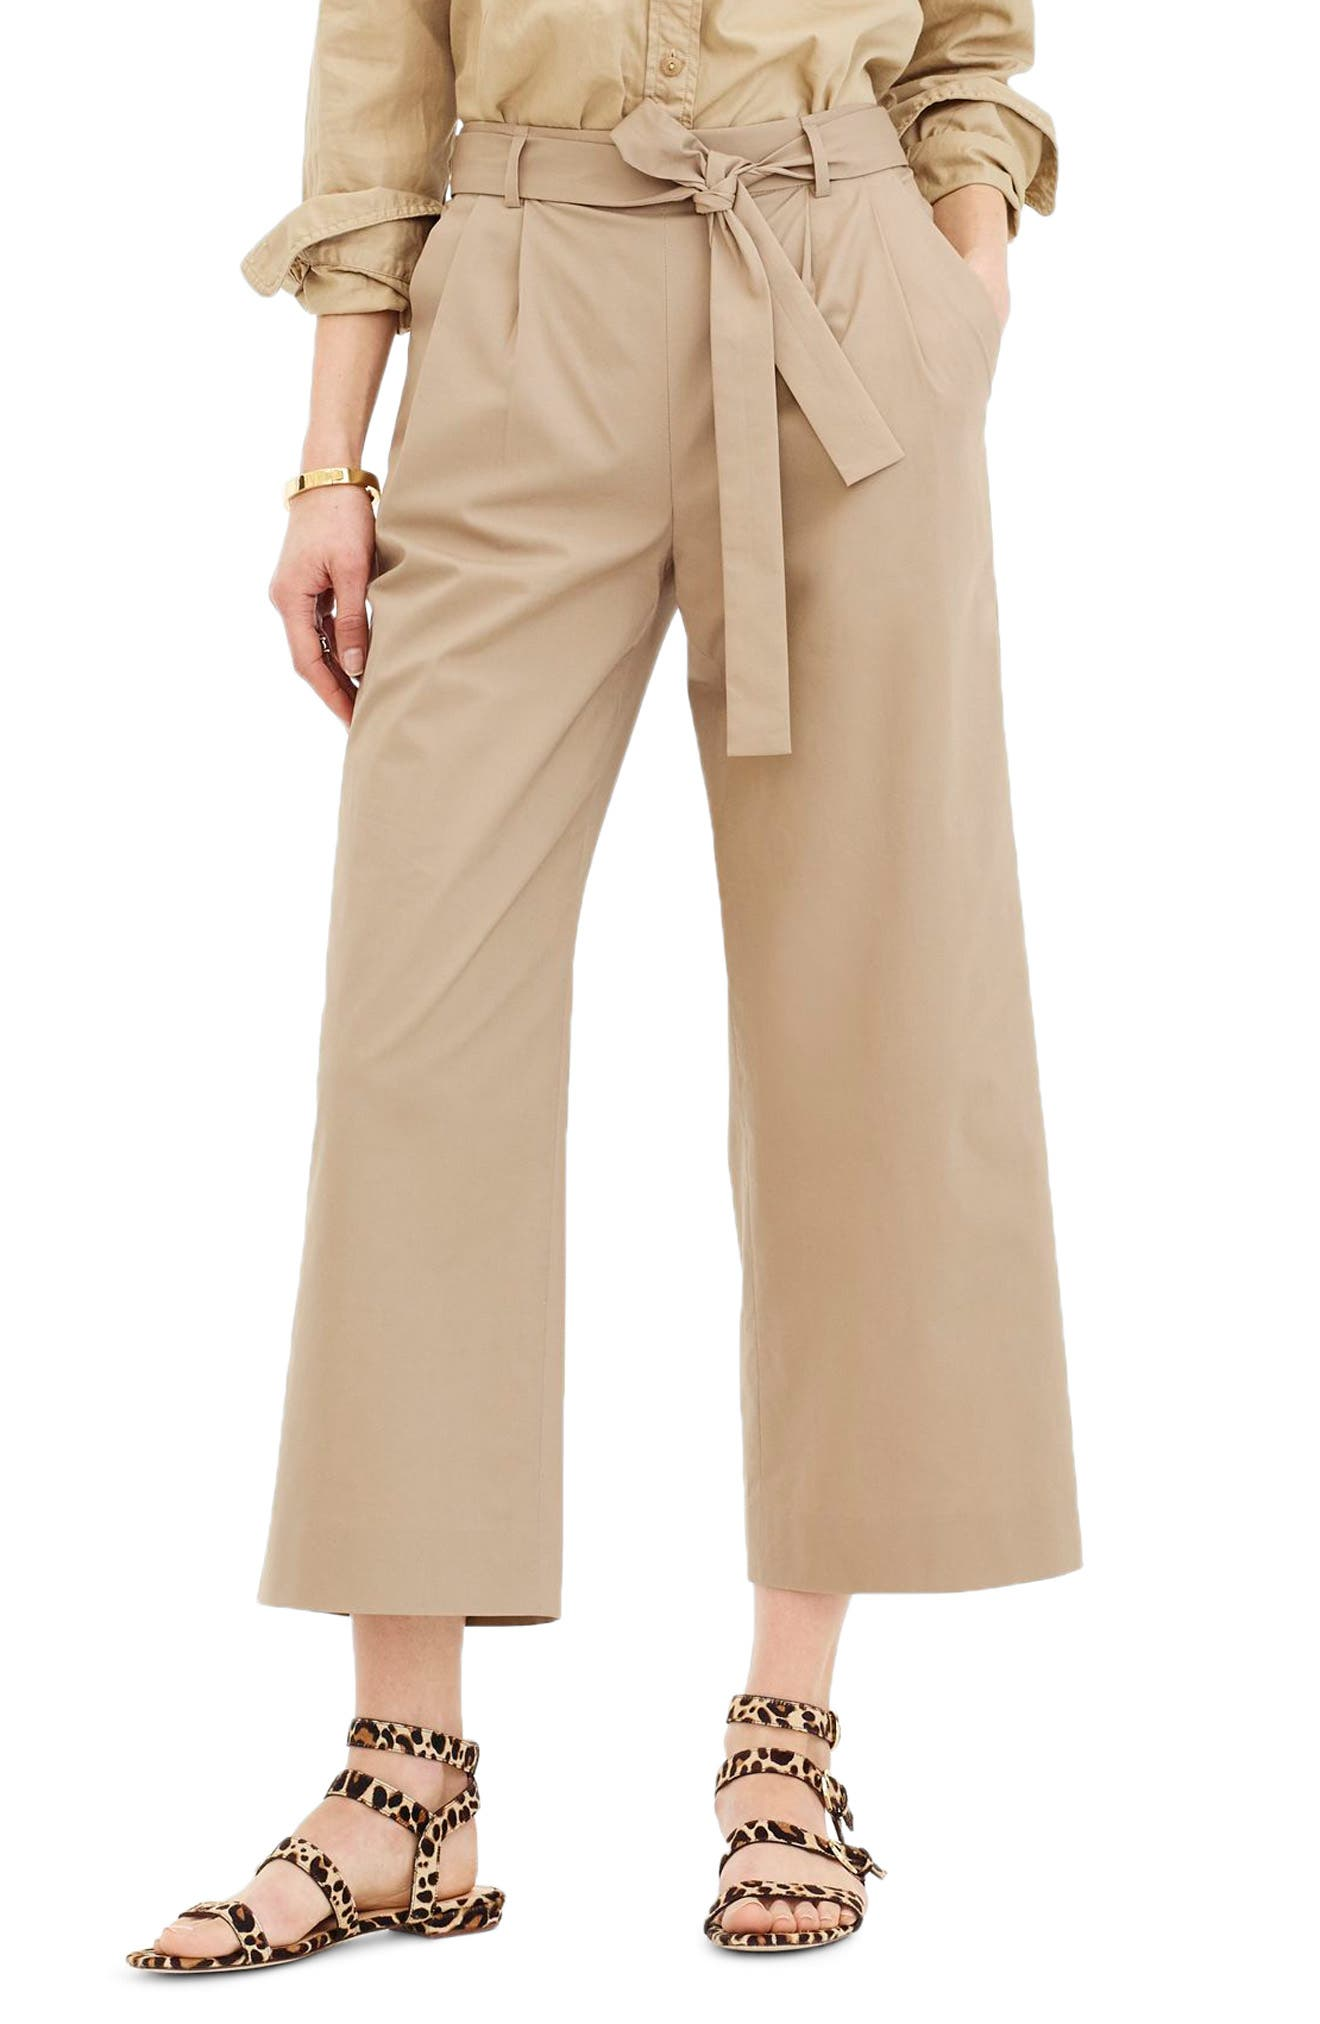 J.Crew Wide Leg Stretch Cotton Poplin Crop Pants (Regular & Petite)